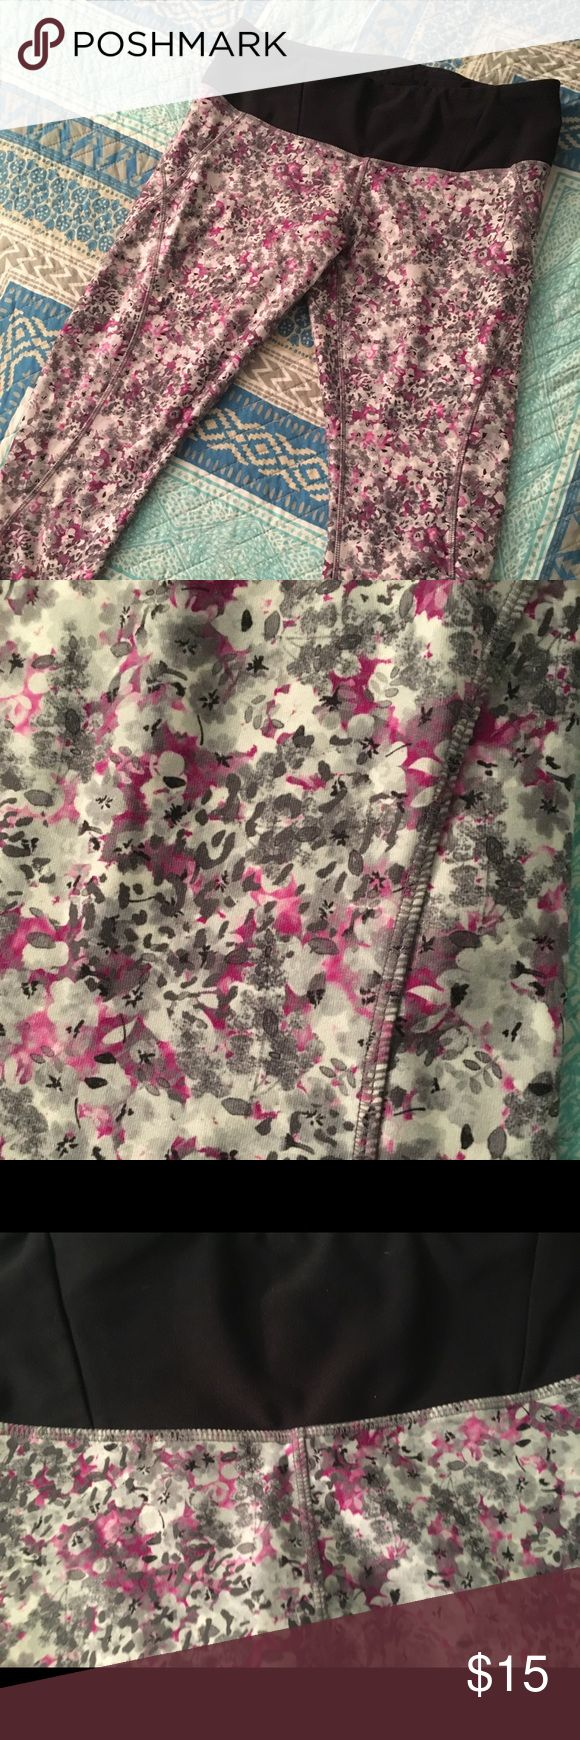 Floral print capri gym leggings Floral print gym capri leggings with black block accents on the sides of the calves ...  Floral pattern is purple/grey/black with black waistband and zipper-close pocket on back of waistband to hold a key or something small  88% polyester / 12% spandex   Gently used and in good condition MPG Pants Leggings